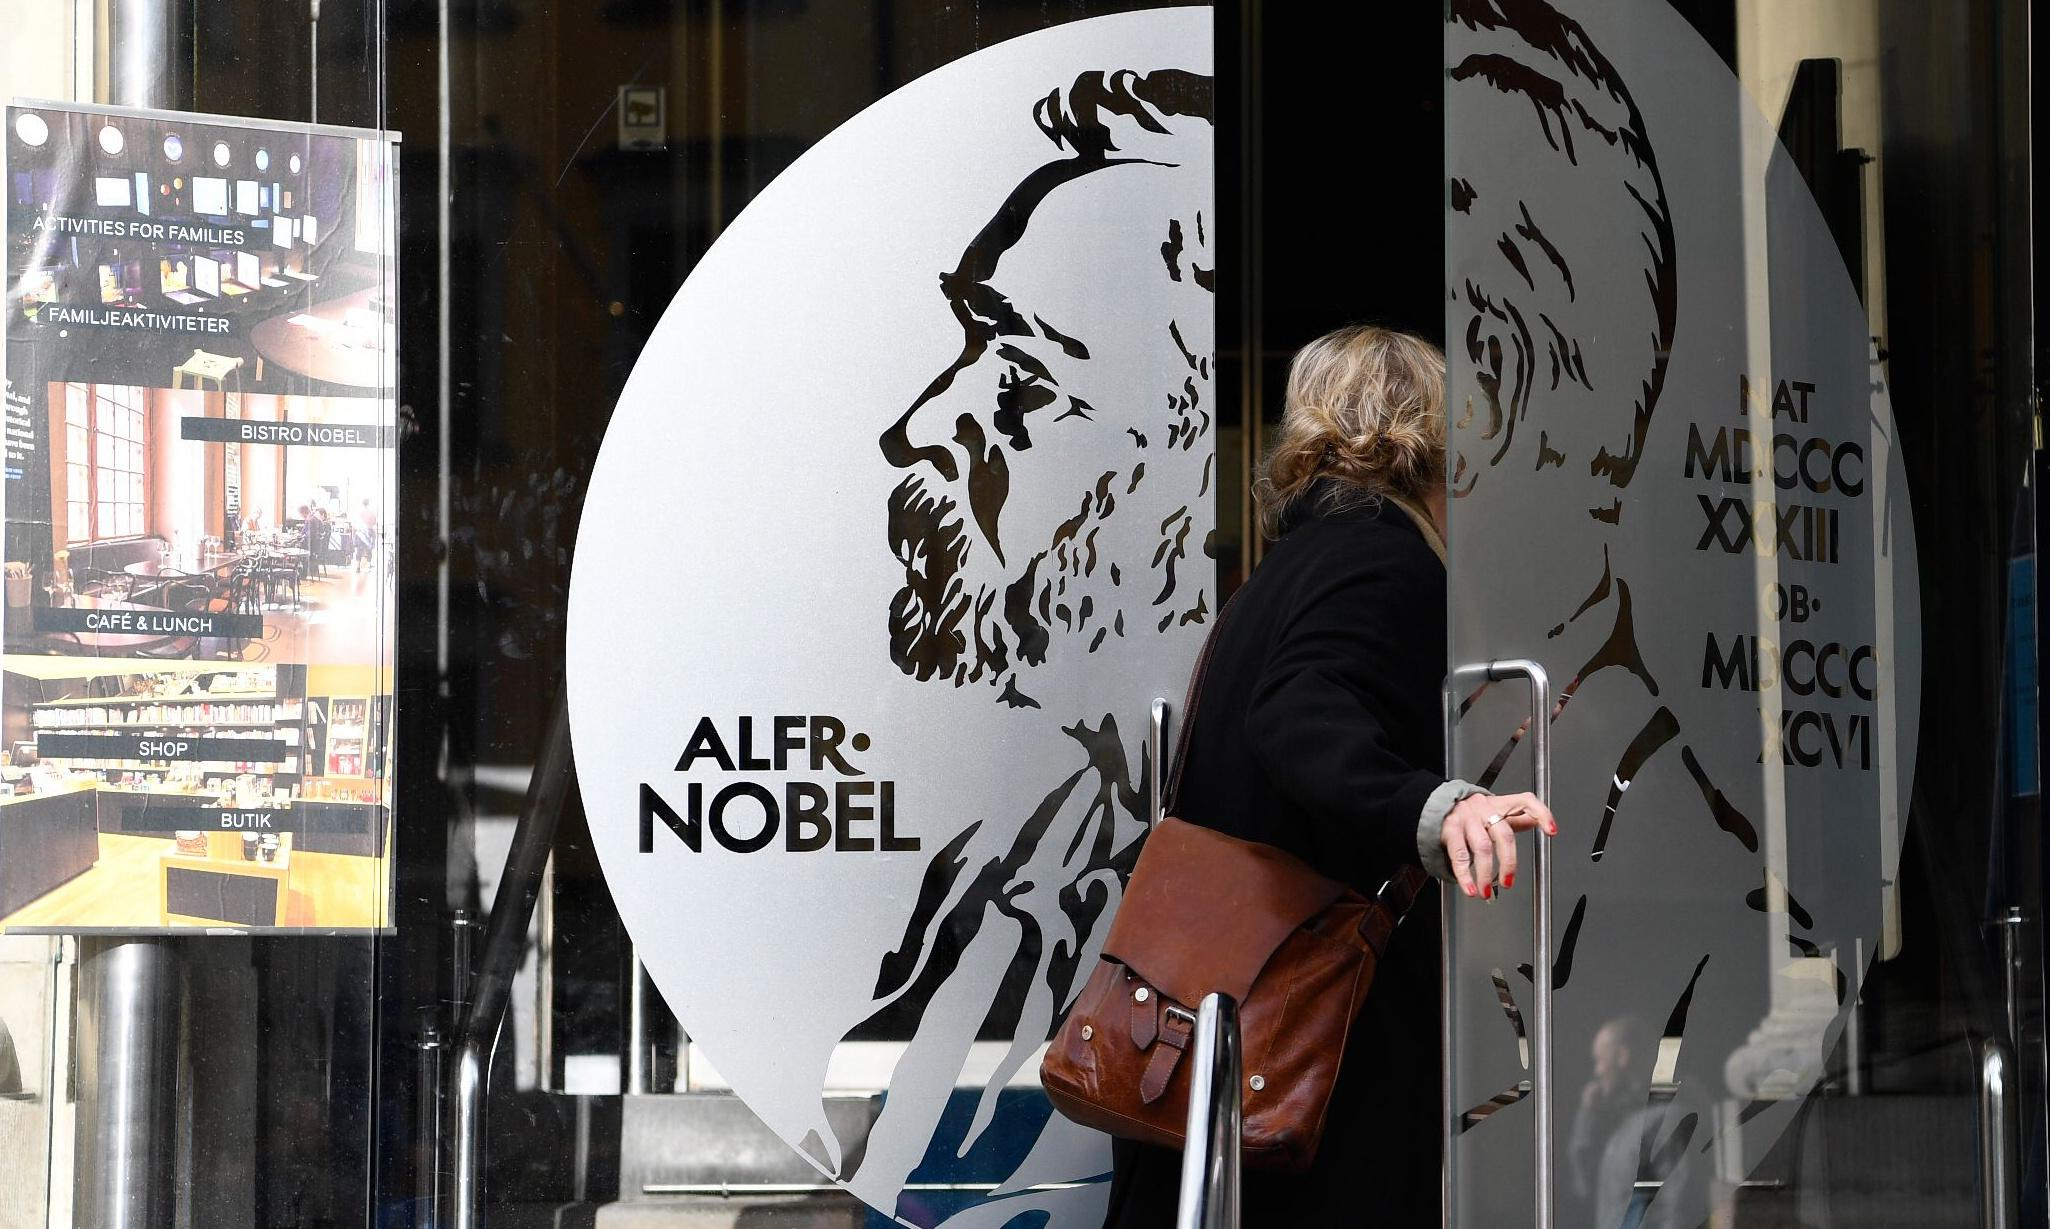 'Gross hypocrisy': Nobel heavyweight to boycott Peter Handke ceremony